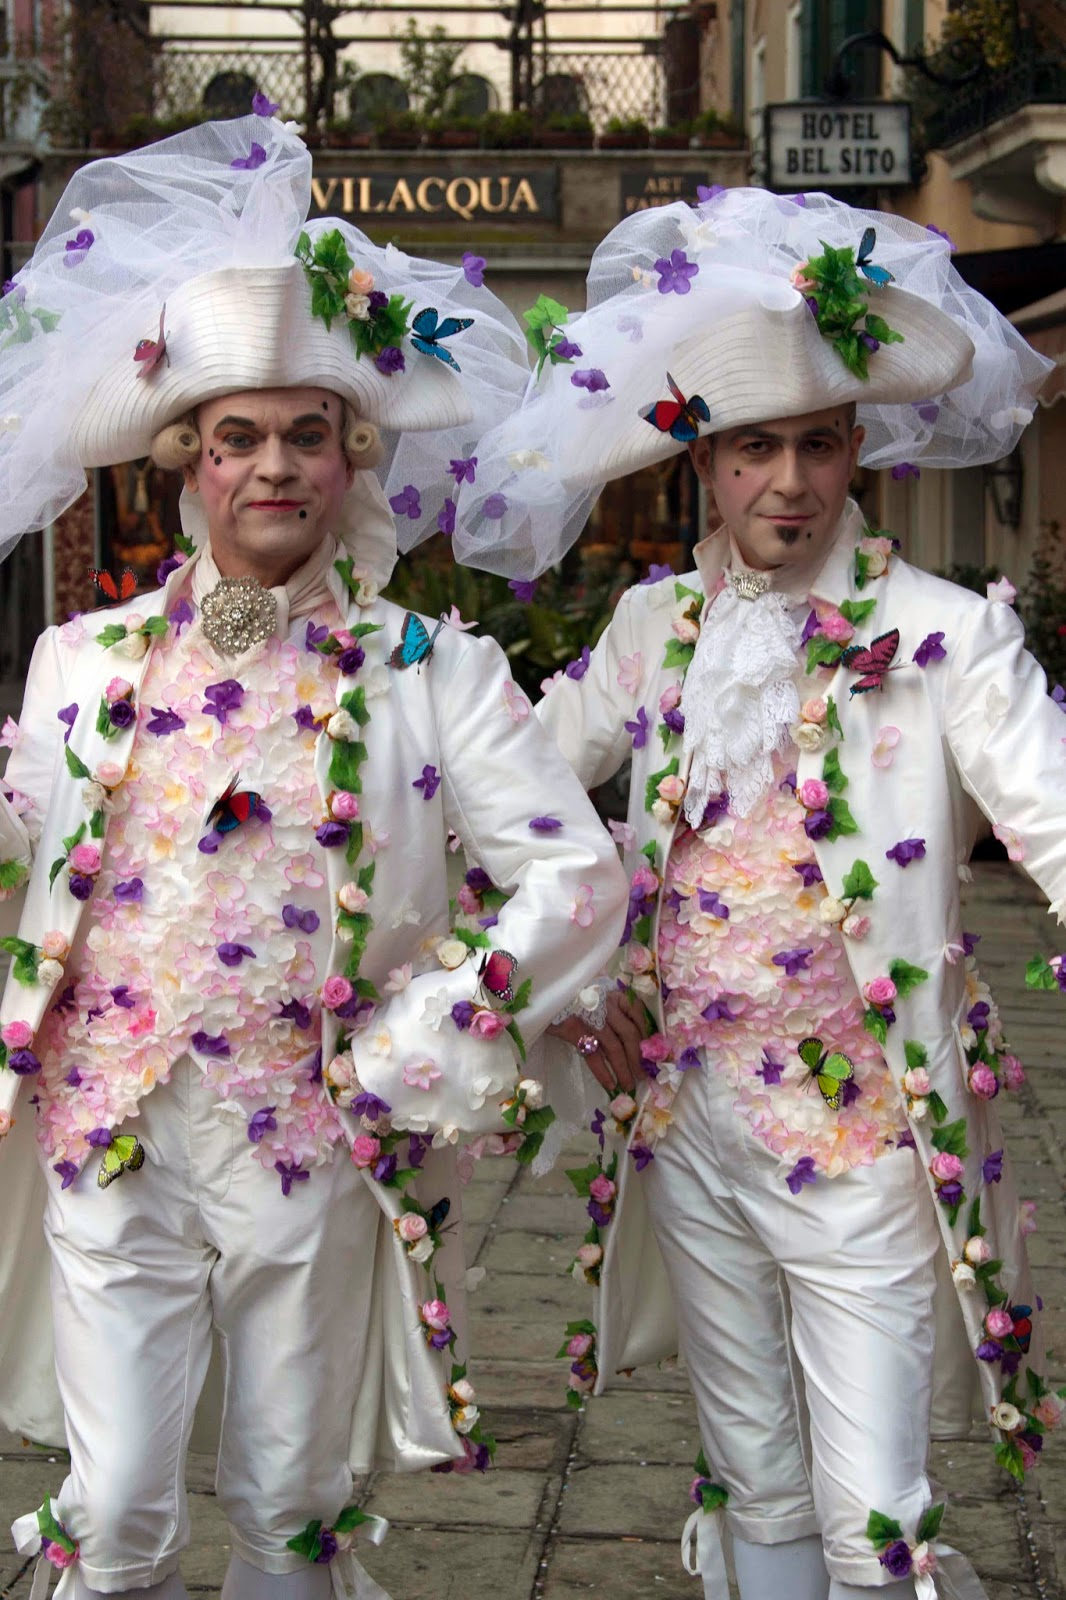 Carnival in Venice: dressed up dandies